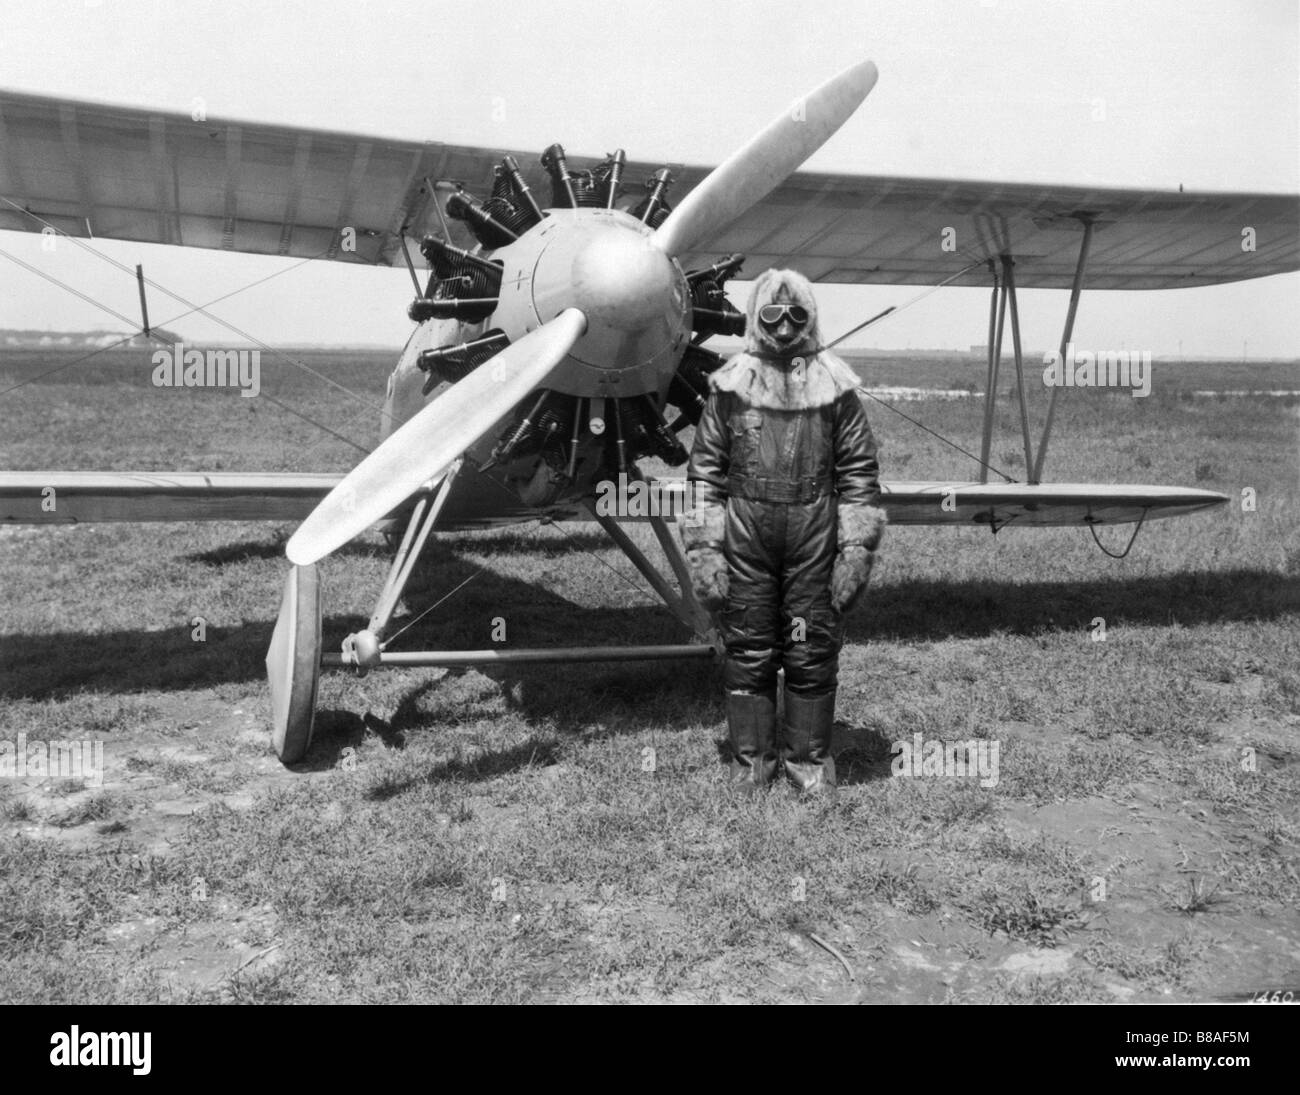 Wright Apache aircraft with a test pilot - Stock Image